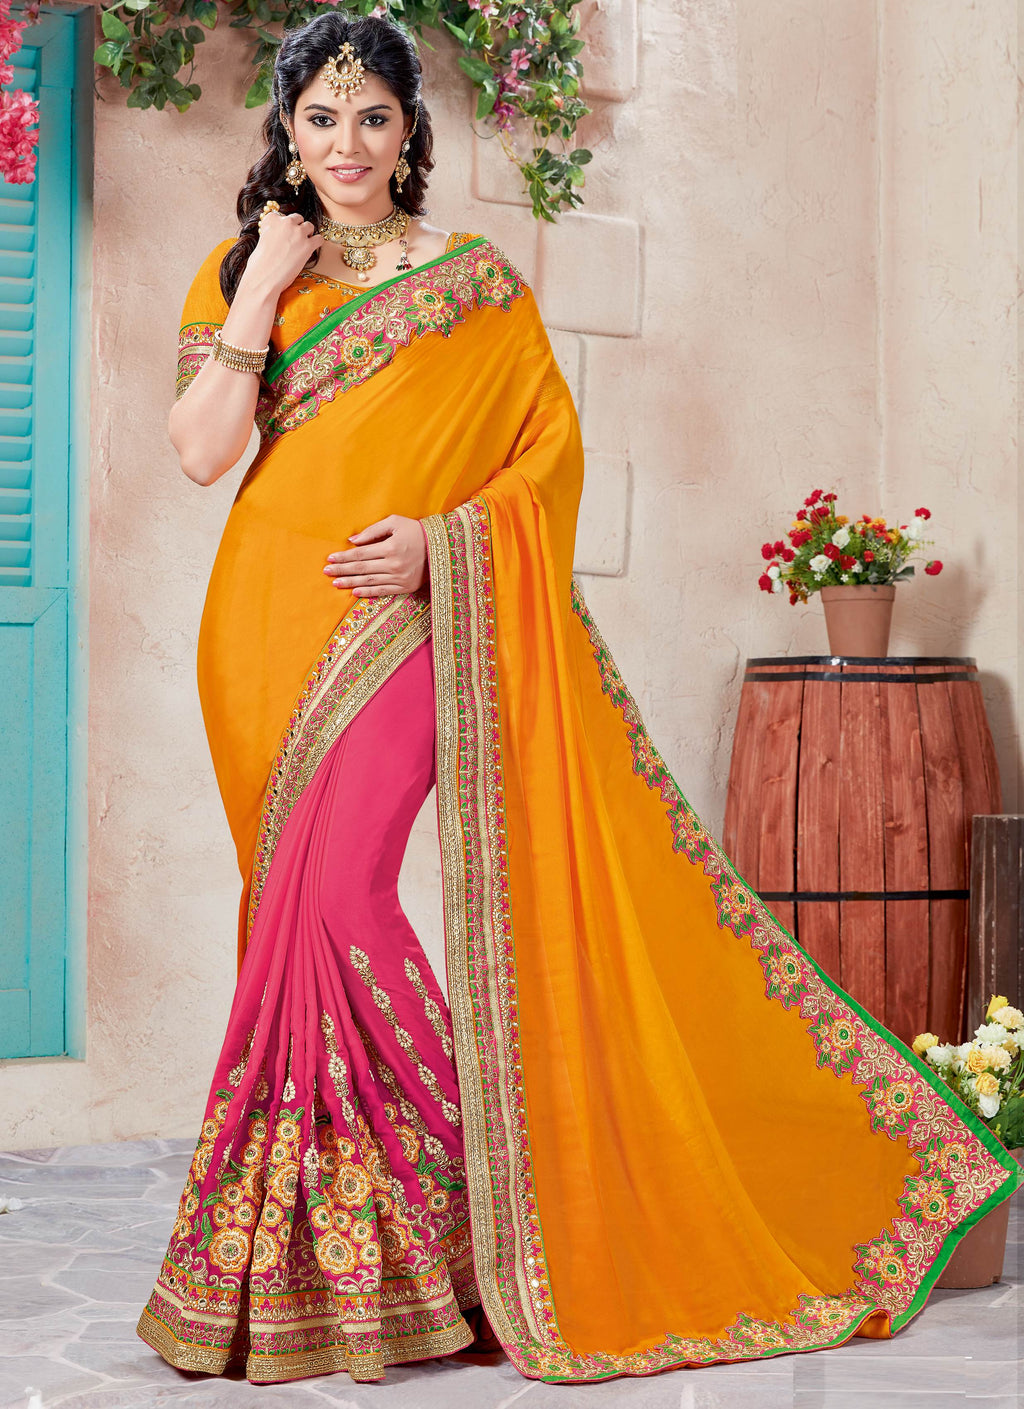 Pink & Turmeric Yellow Color Wrinkle Chiffon Designer Party Wear Sarees  Richdelight9 Catlog SJ-10140